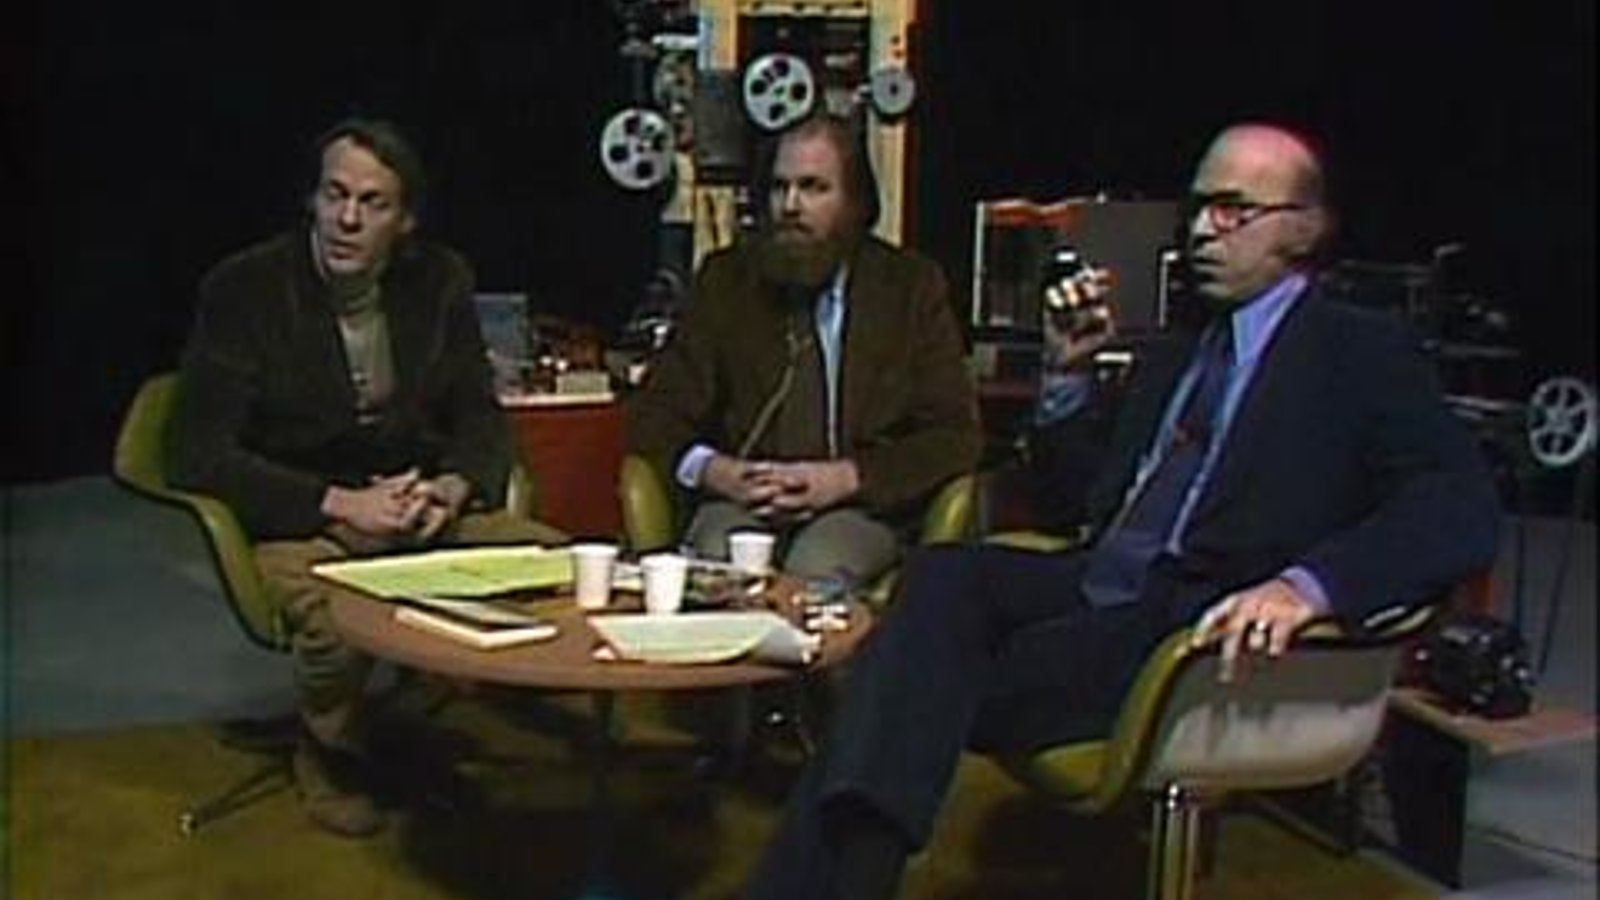 Screening Room with Standish Lawder & Stanley Cavell